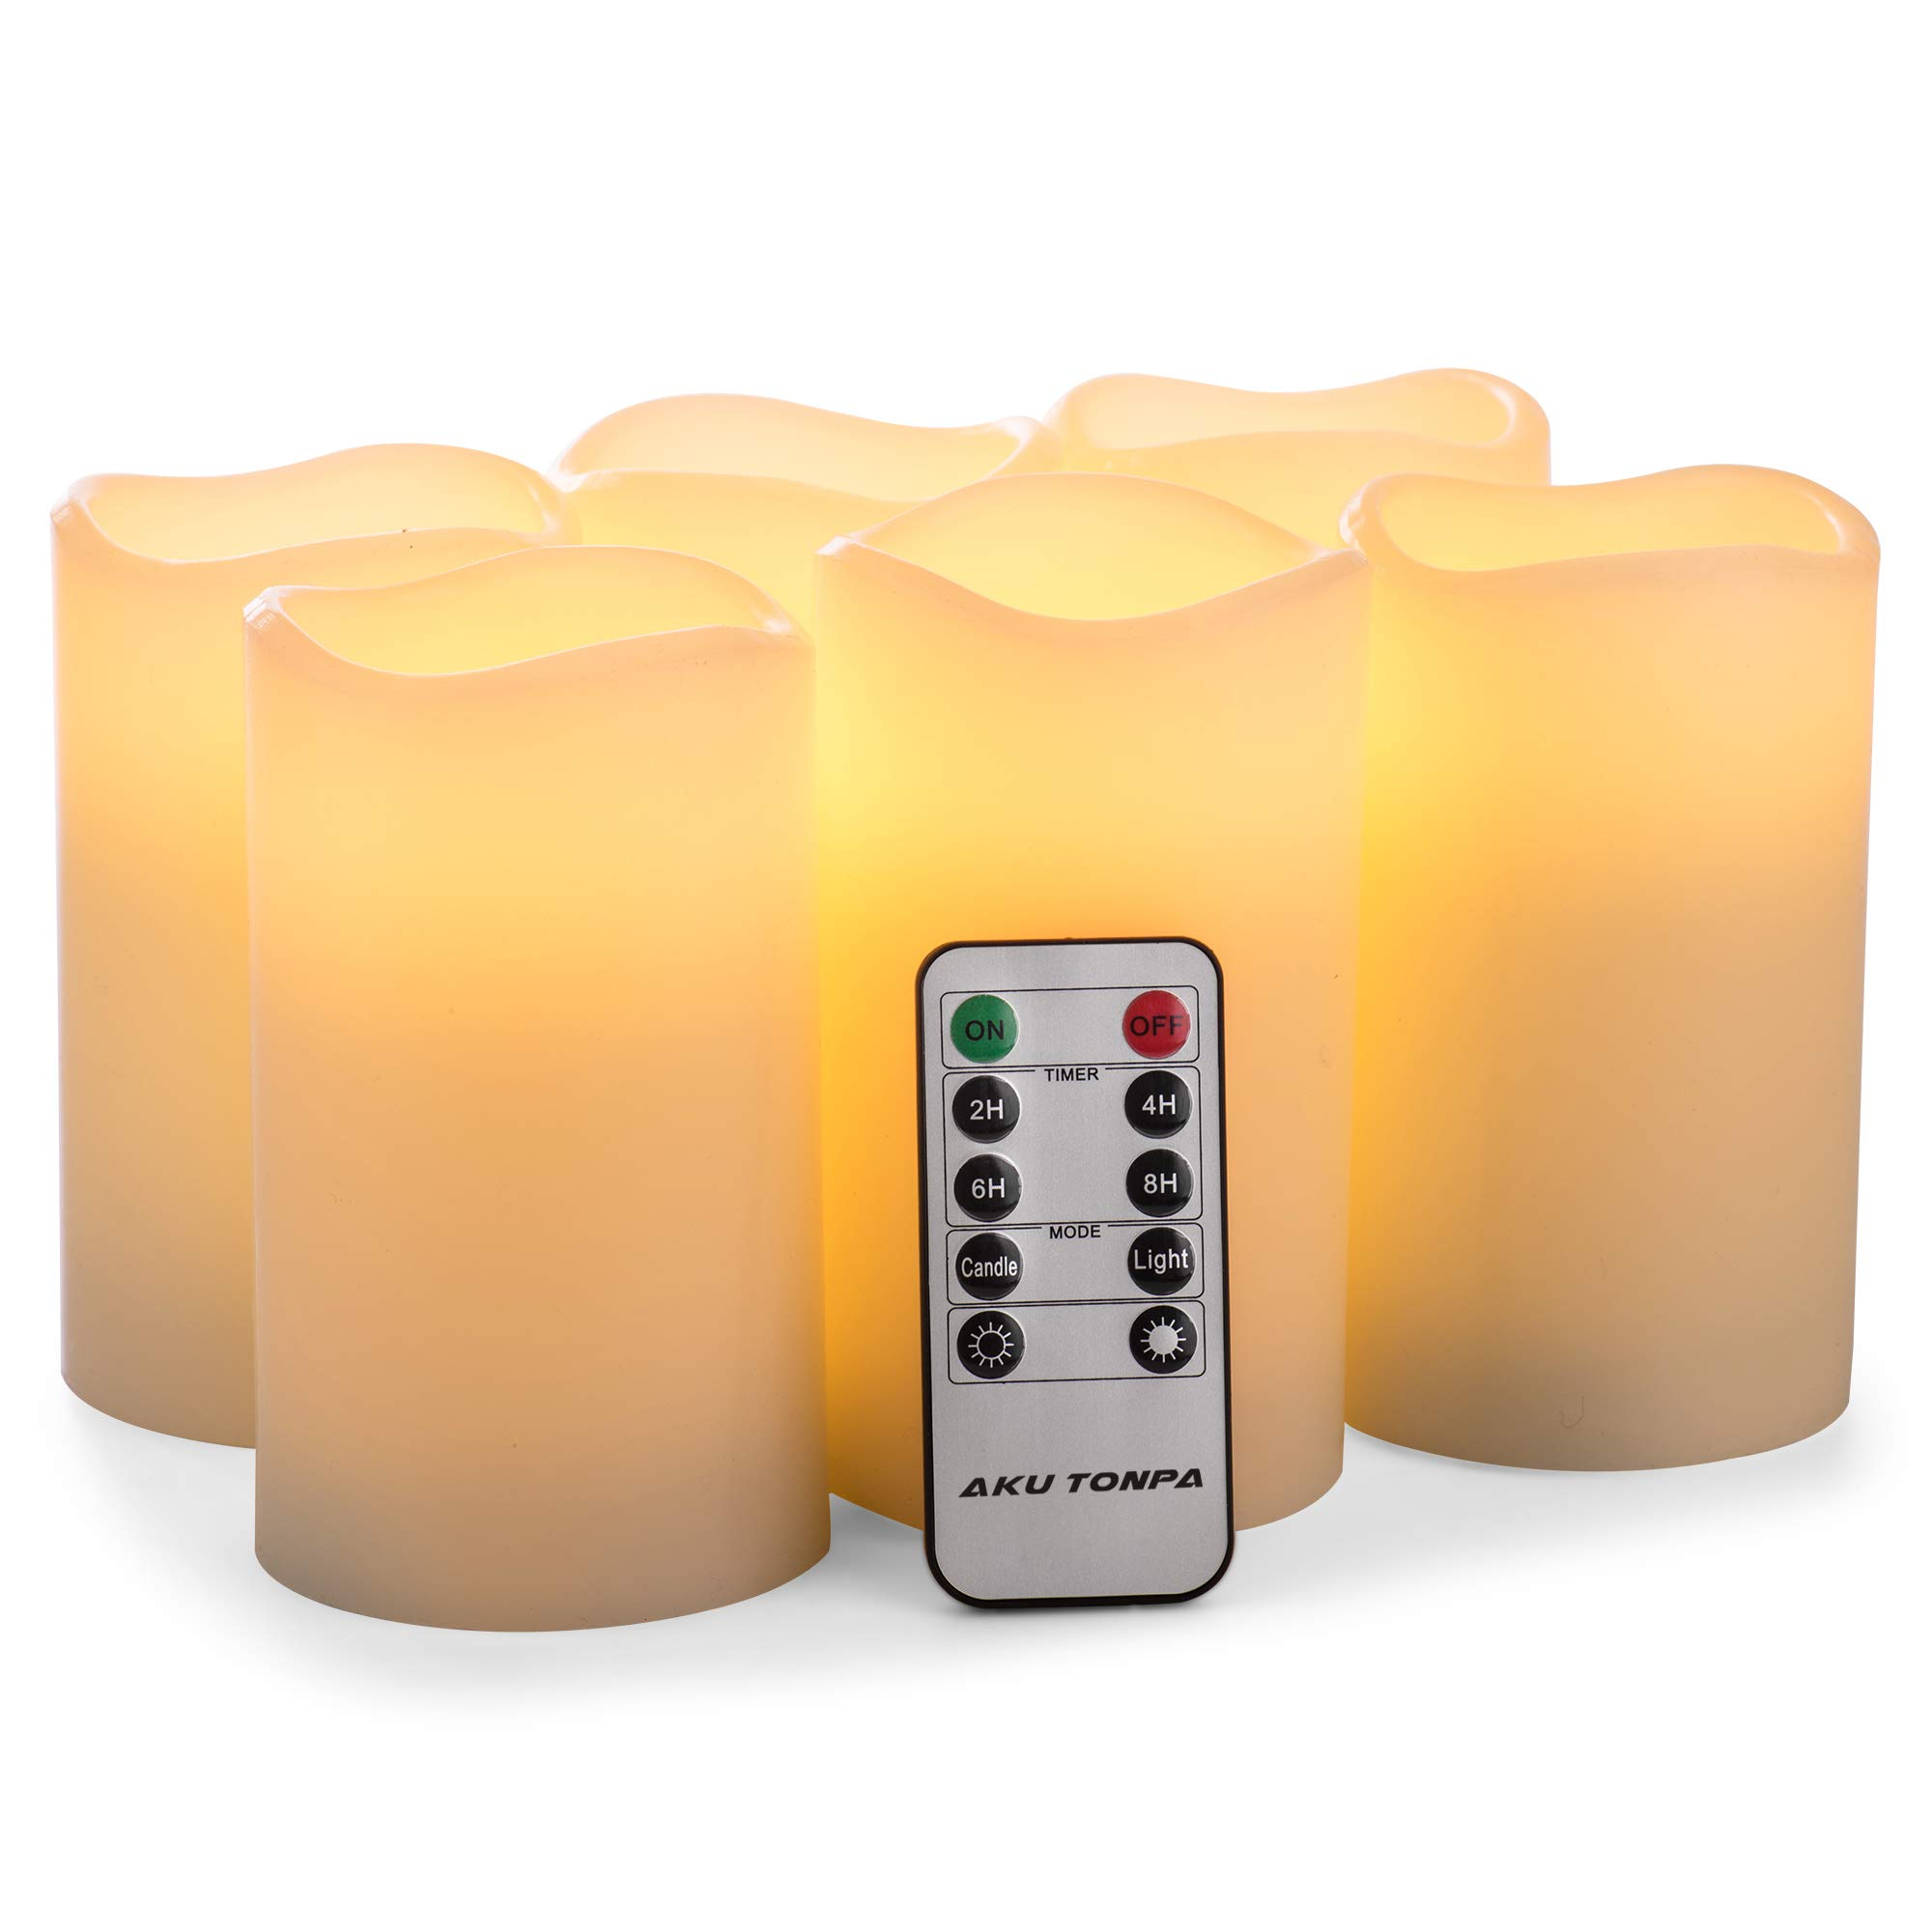 Flameless Candles Battery Operated Pillar Real Wax Flickering Electric LED Candle Gift Sets with Remote Control Cycling 24 Hours Timer by Aku Tonpa, 3''x5'' Pack of 6